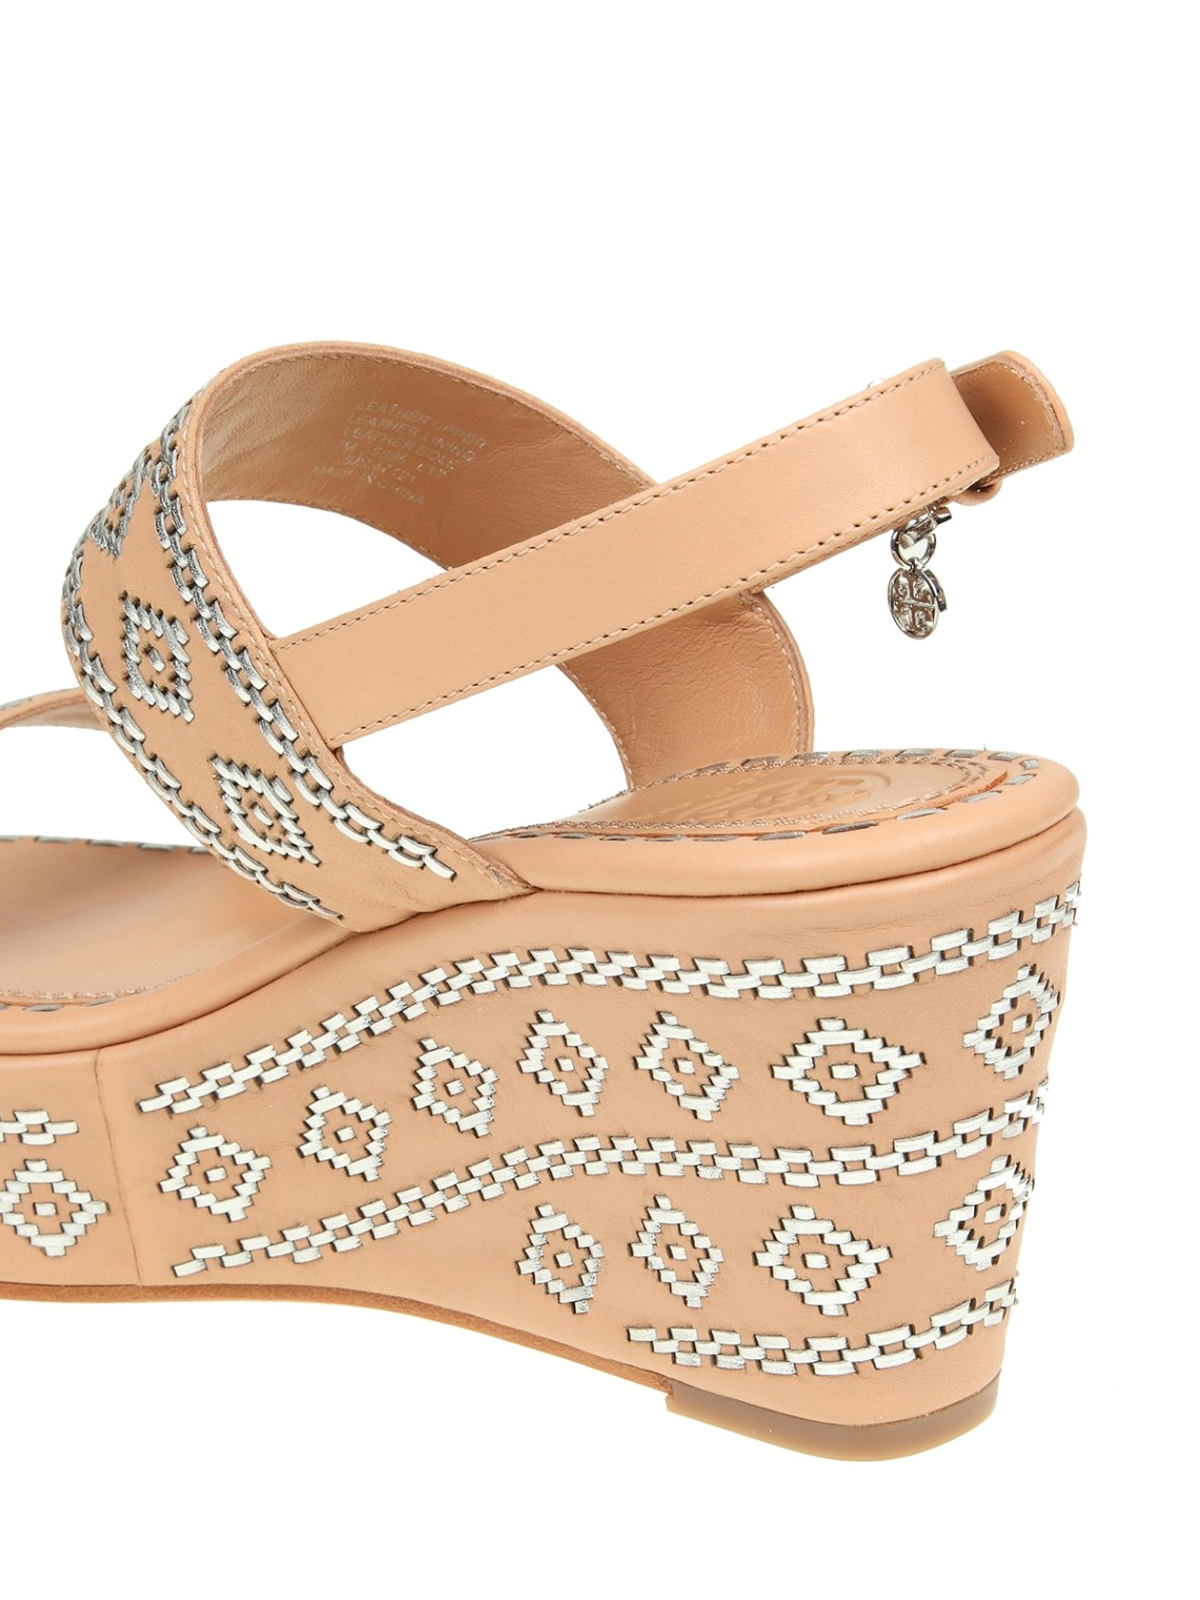 f12425f45ab187 Tory Burch - Blake nude leather wedge sandals - sandals - 47121261